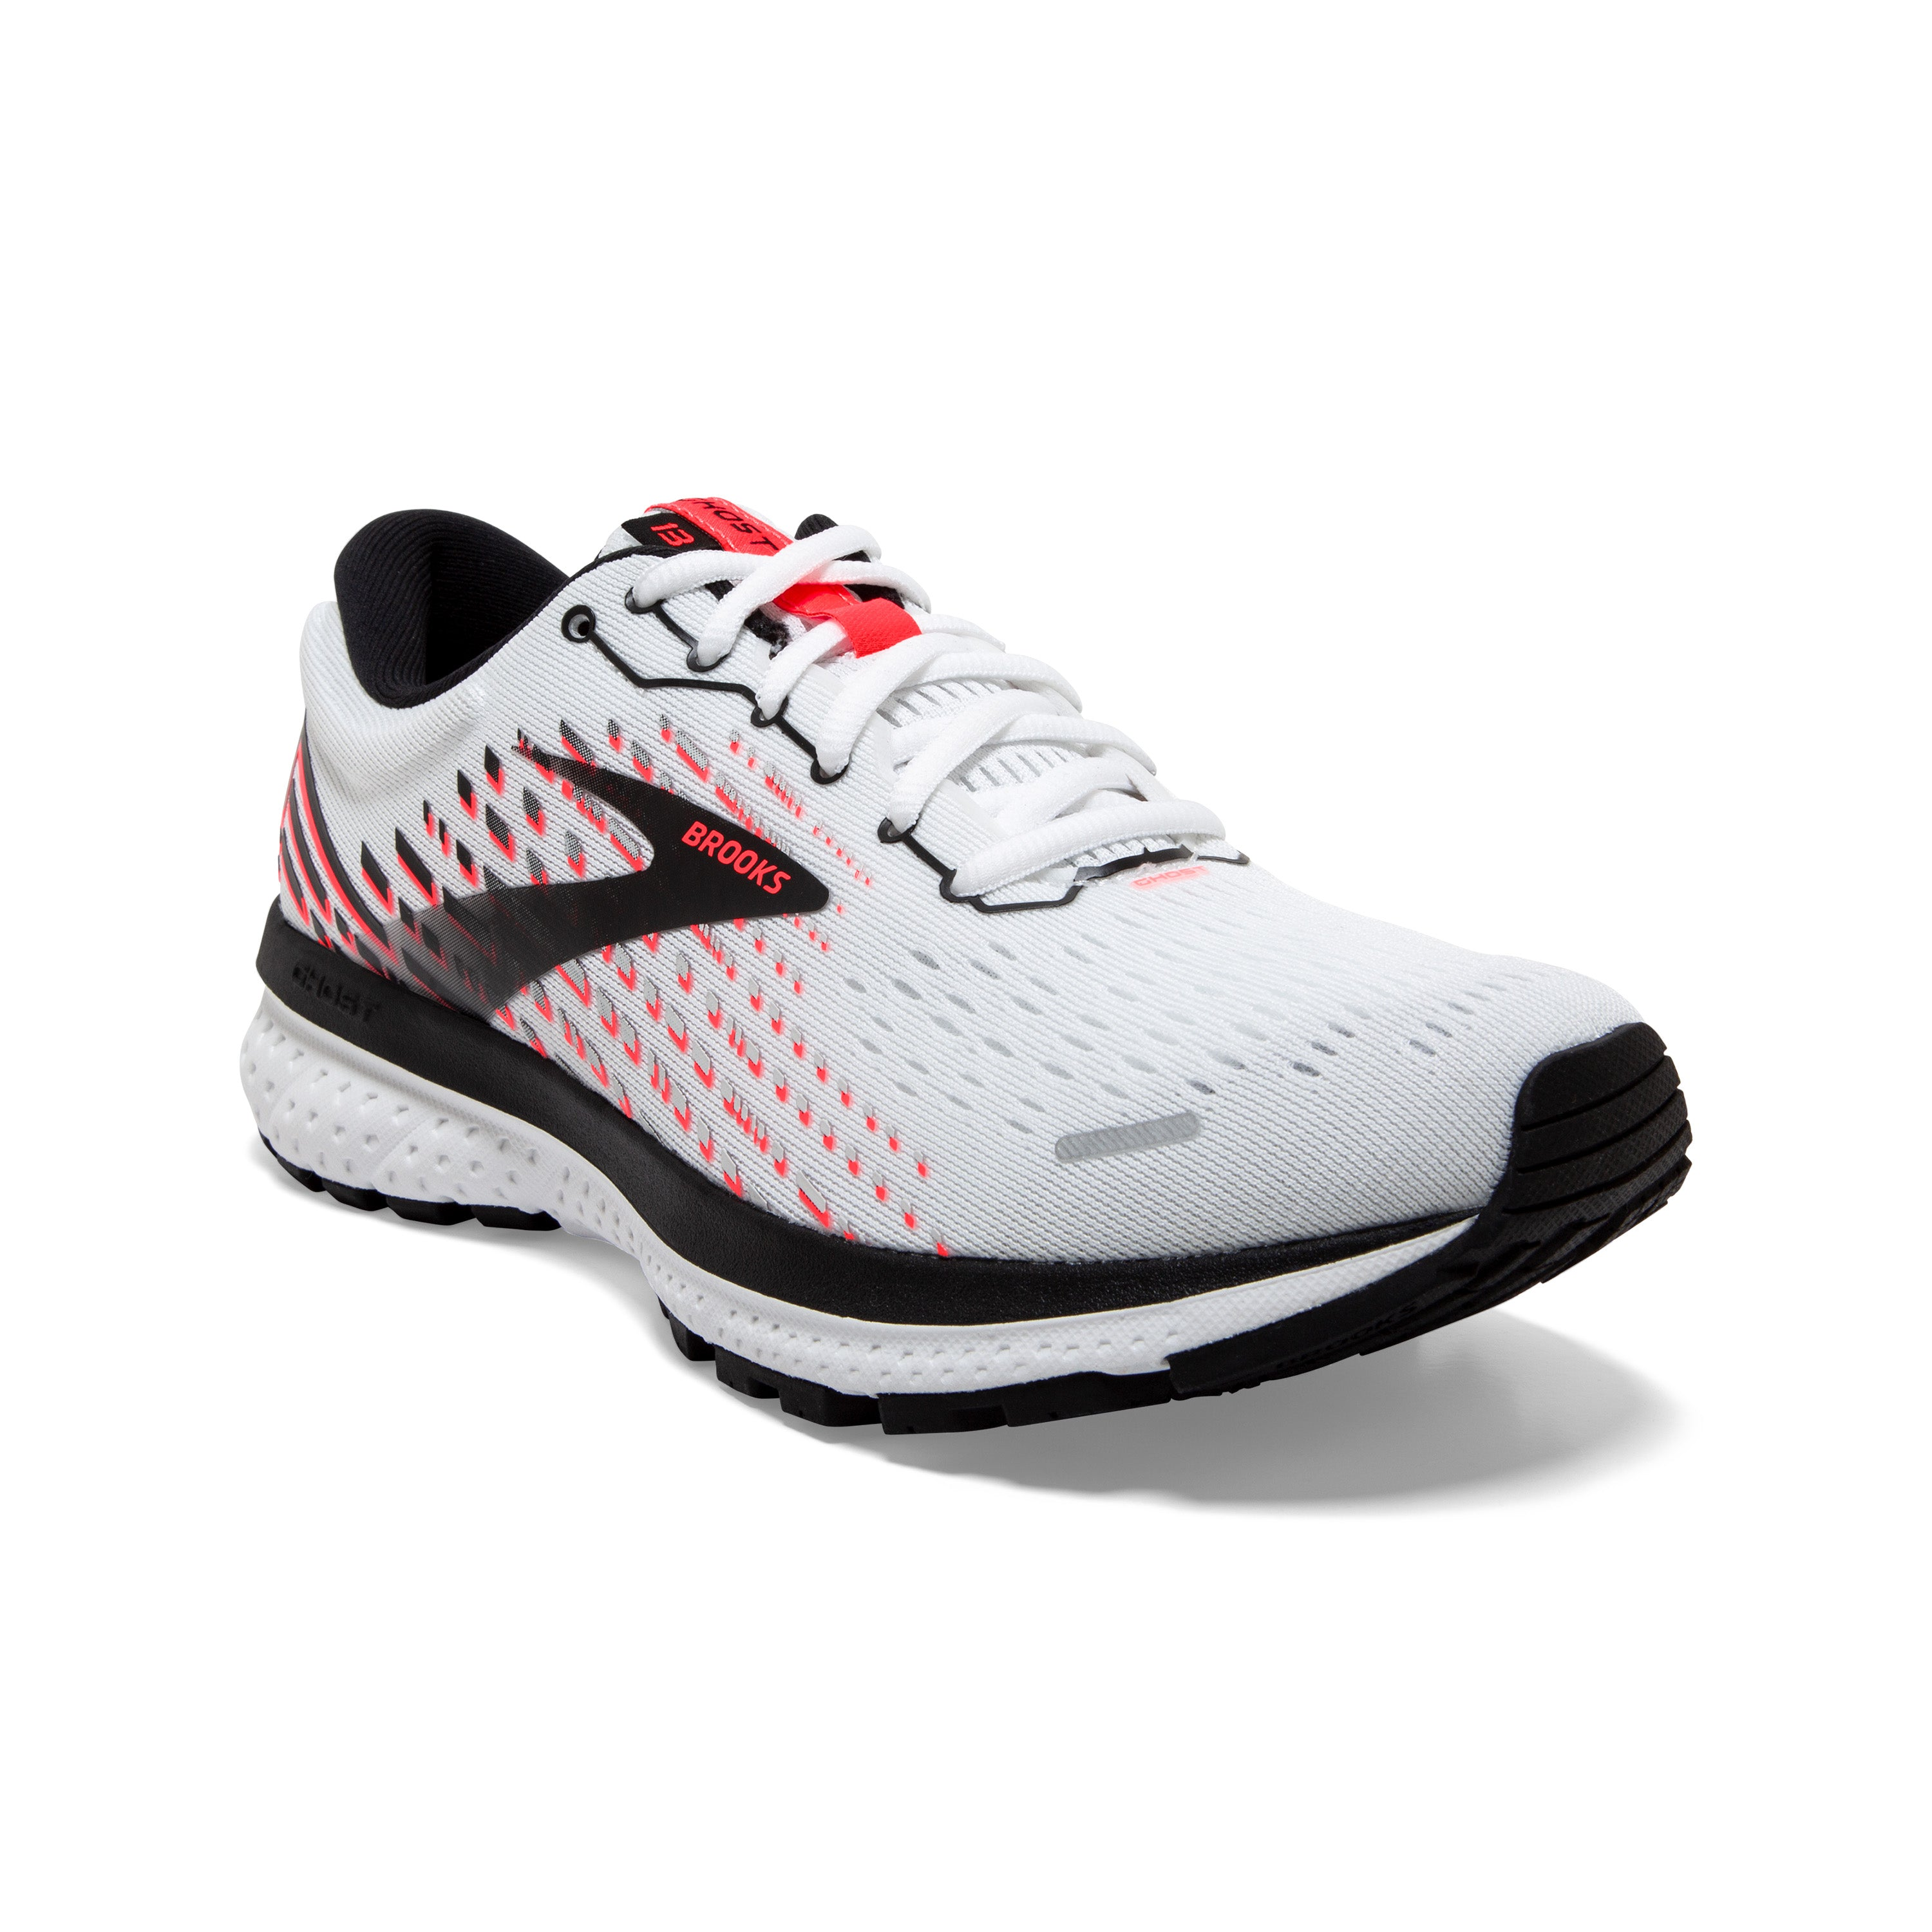 Women's Ghost 13 (192-white/pink/black)